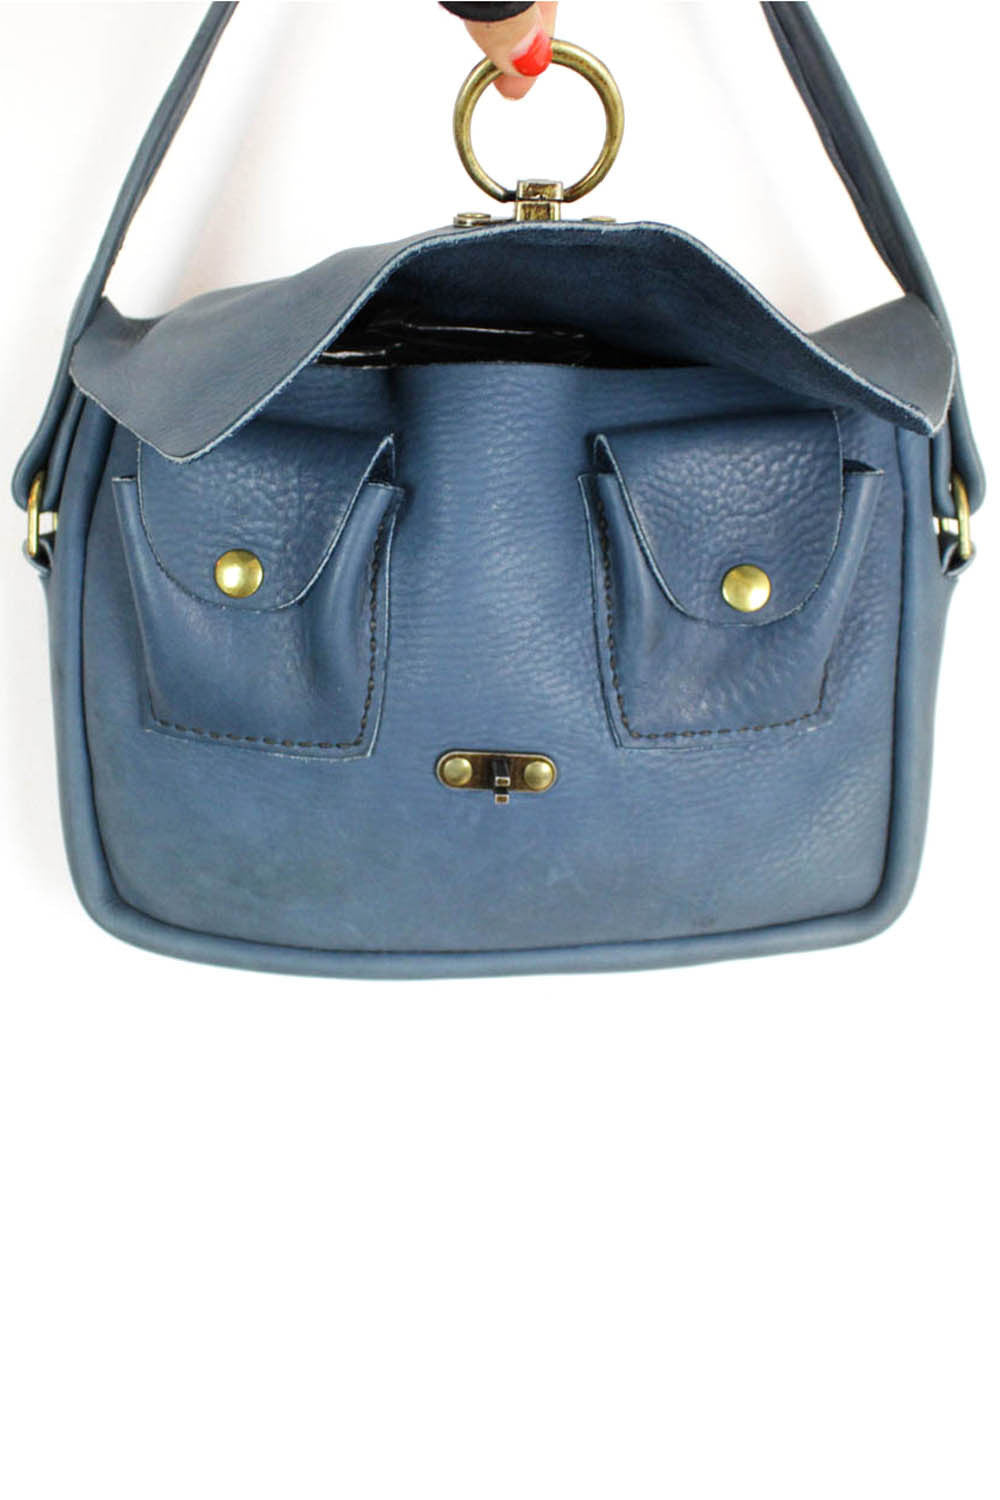 denim blue satchel